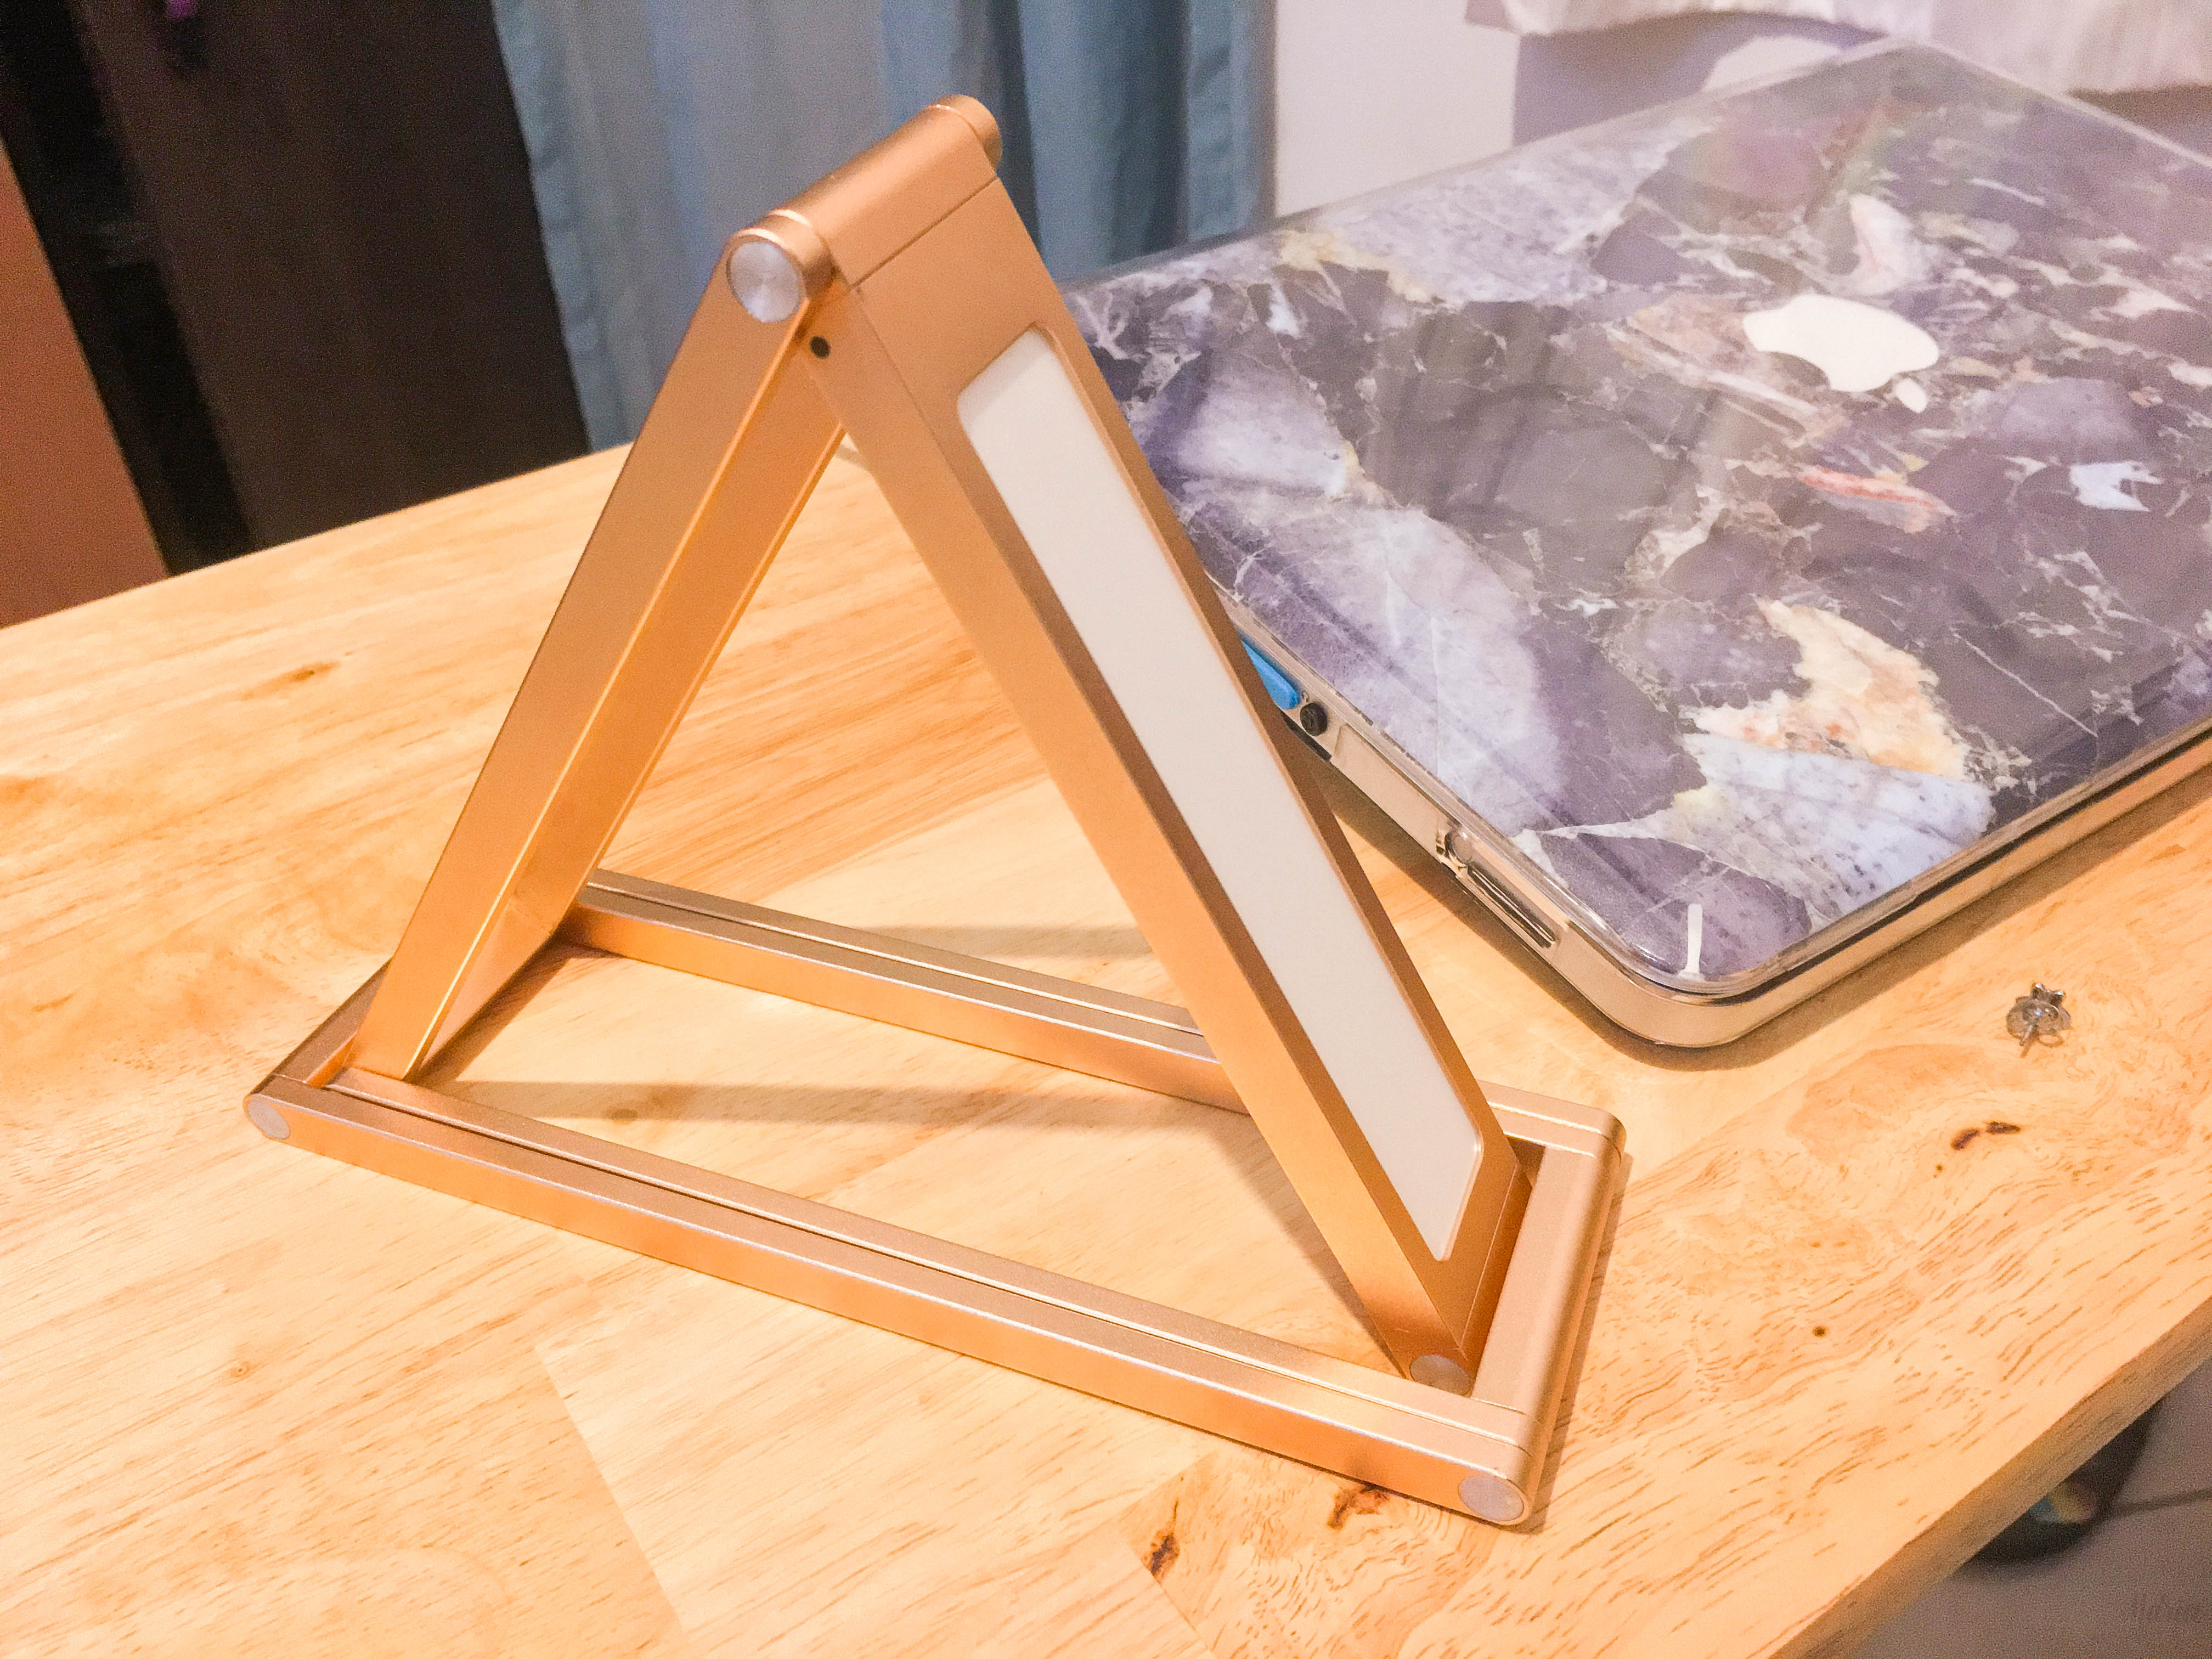 Whats Up December The Ber Haul Mariaisquixotic Miniso Golf Desk Lamp 2 Geometric Led From Paper Blush